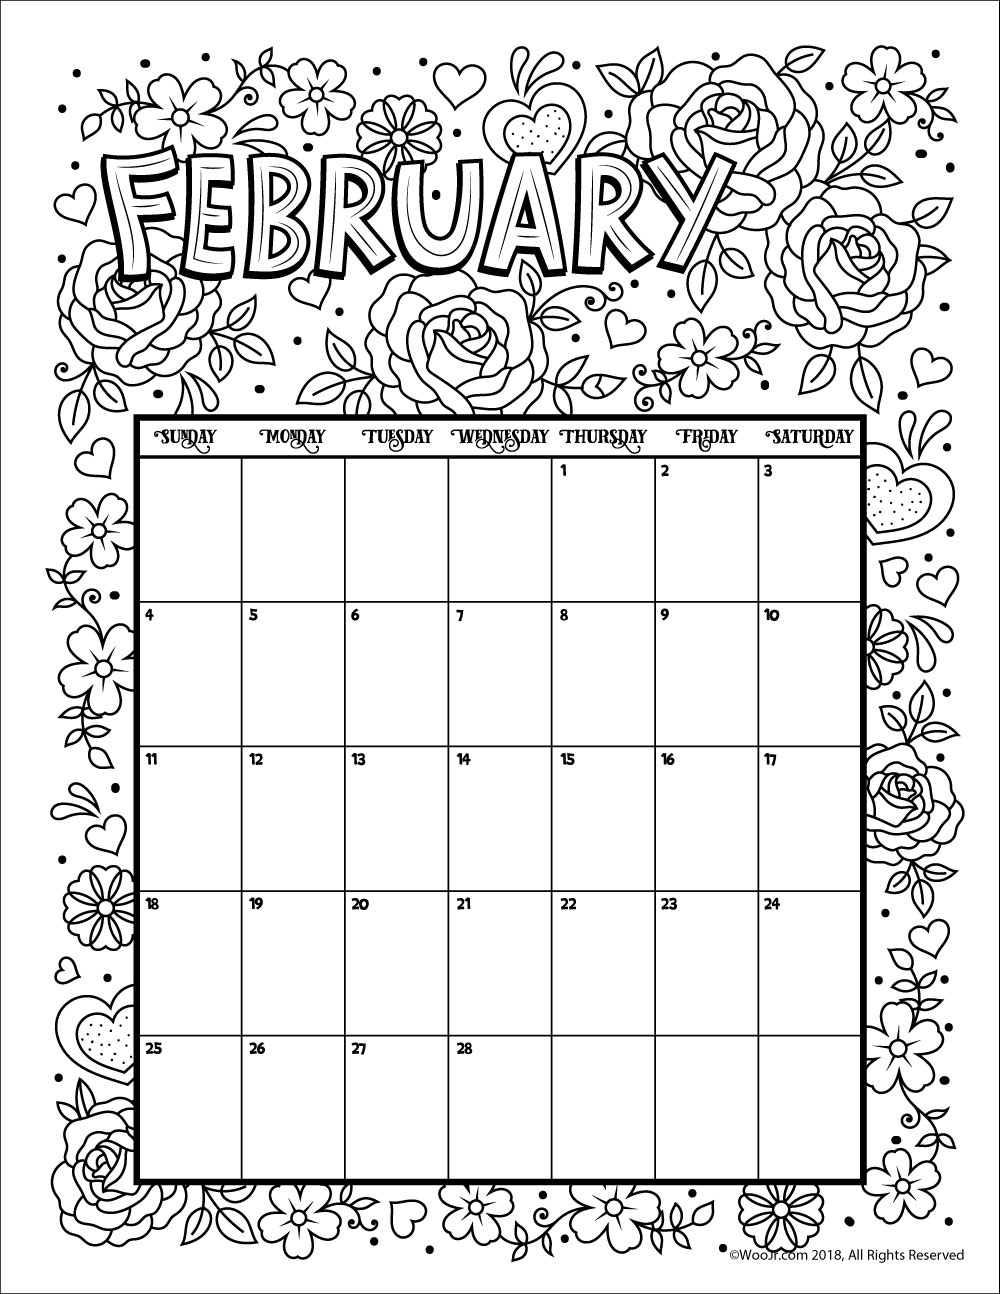 Free Printable Calendar Coloring Pages | Ten Free ...